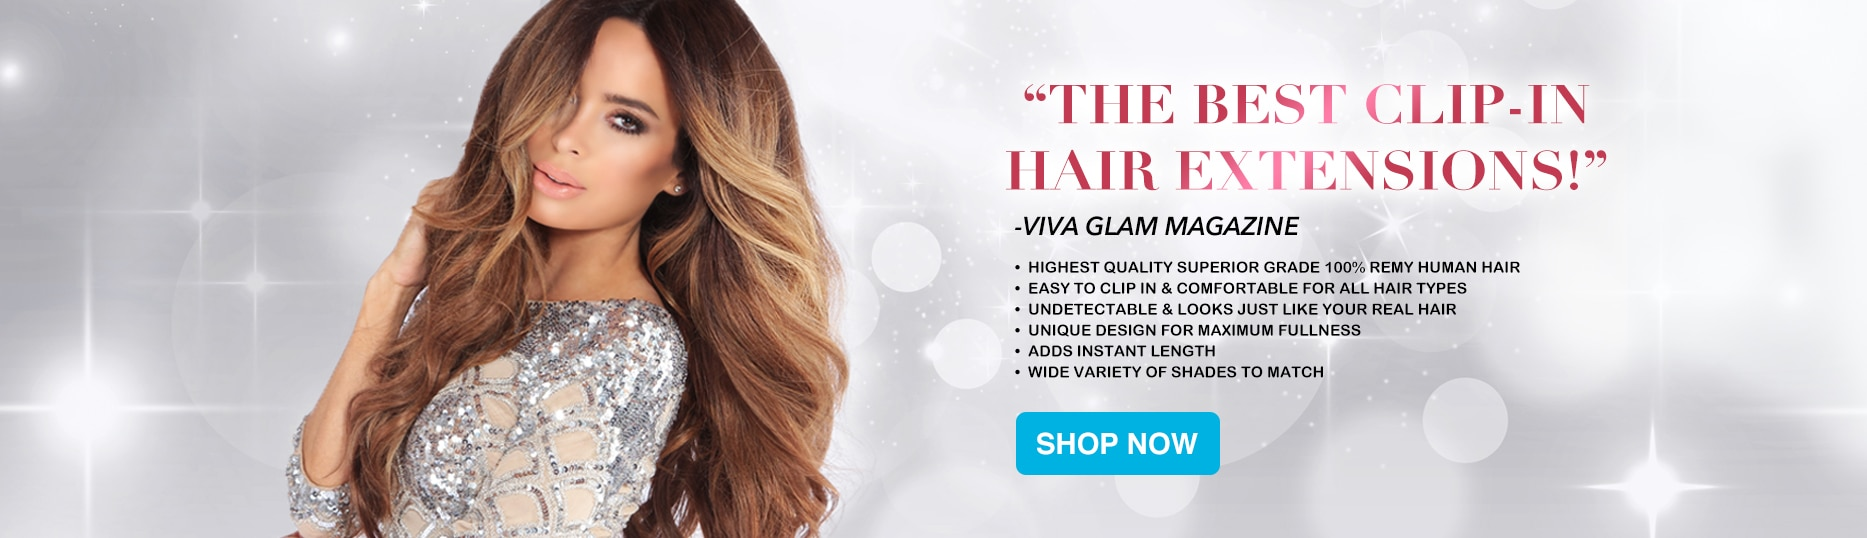 BLACK FRIDAY CASHMERE HAIR SALE COUPON CODE BIGHAIR2018